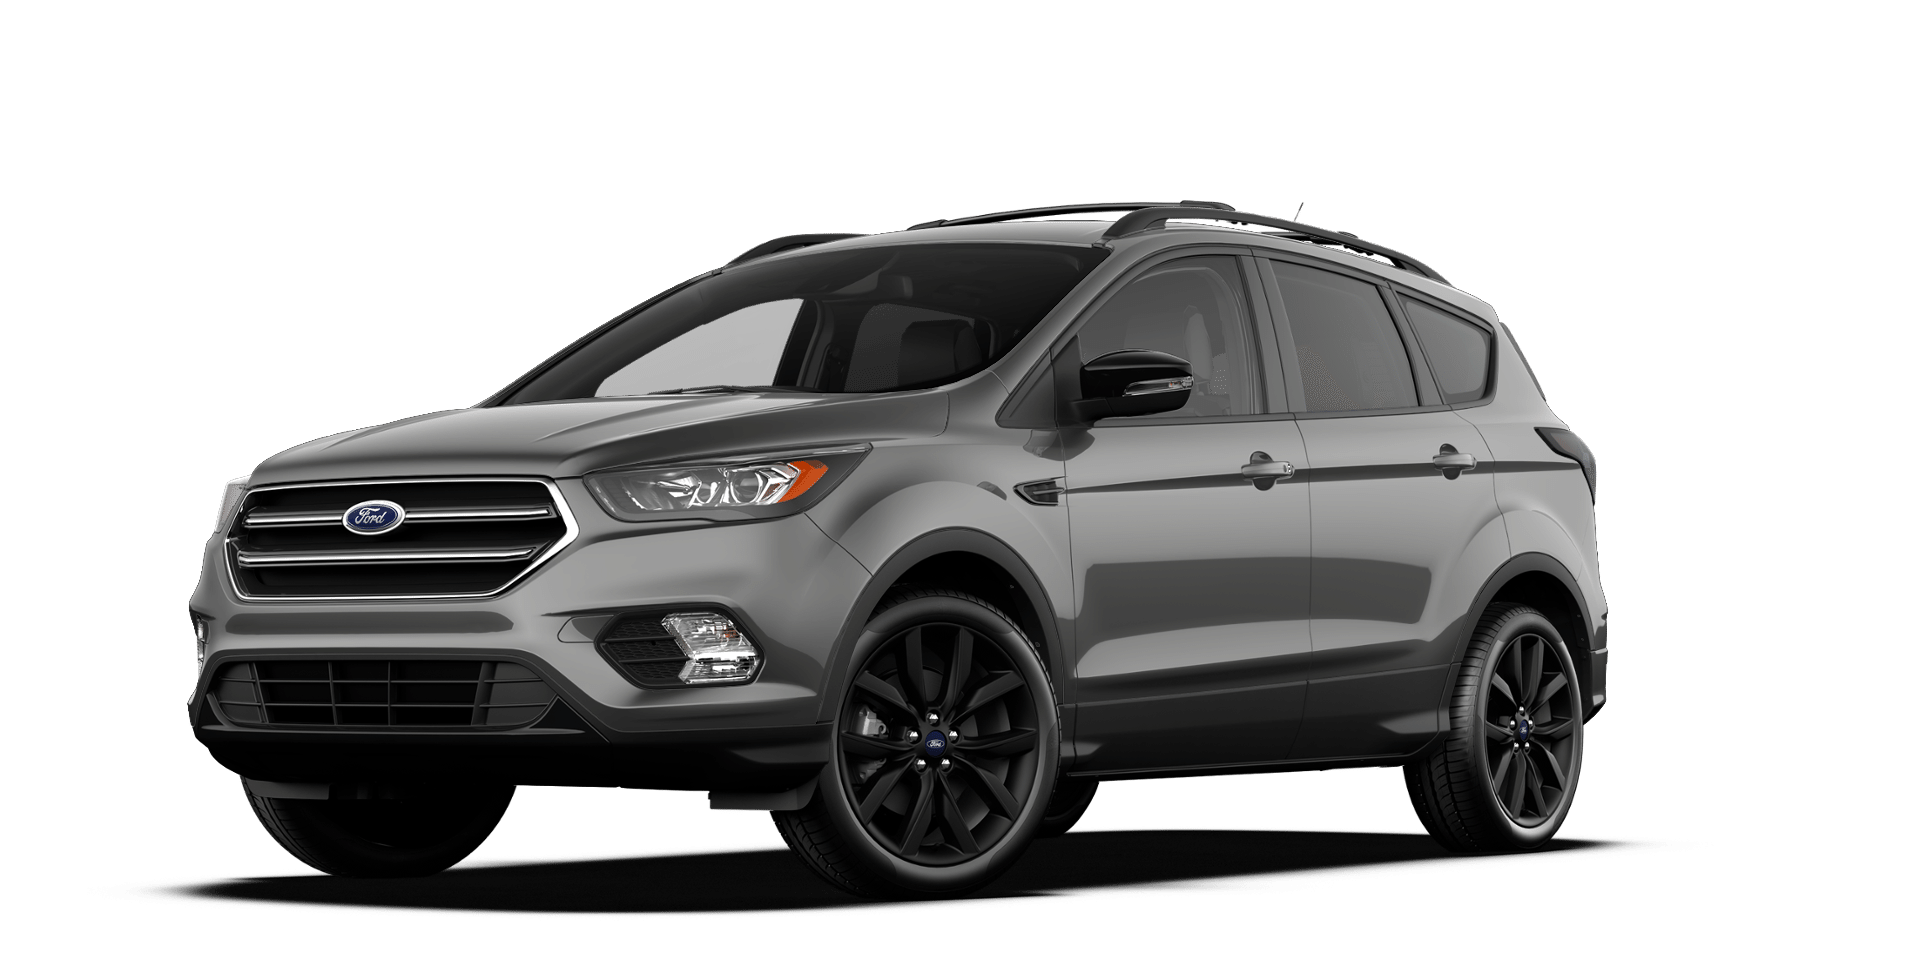 2017 Ford Escape Build Price 2017 Ford Escape Ford Escape Ford